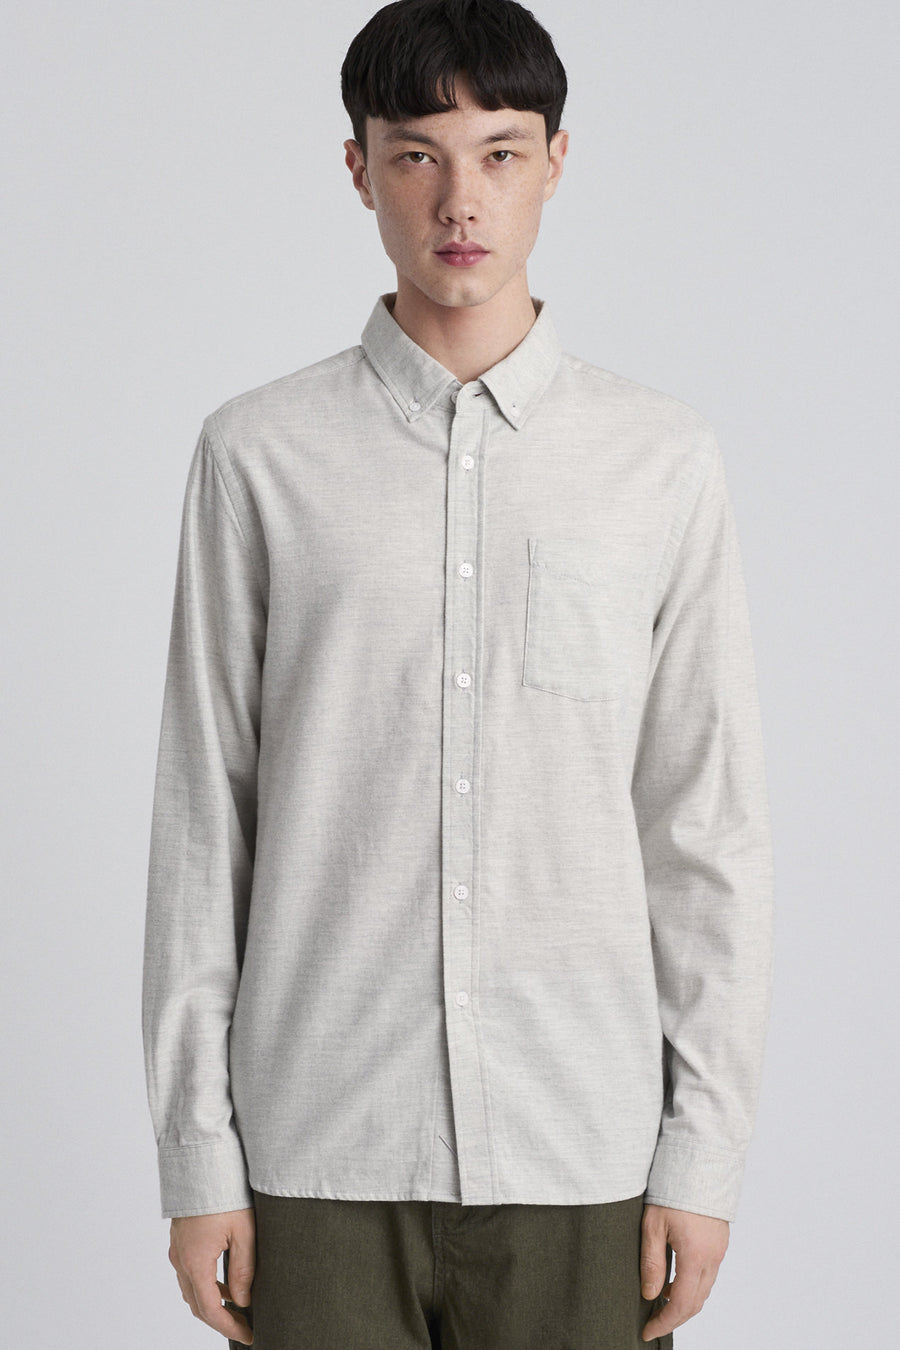 Crosby Flannel L/S Shirt - Ash Heather - Pavilion